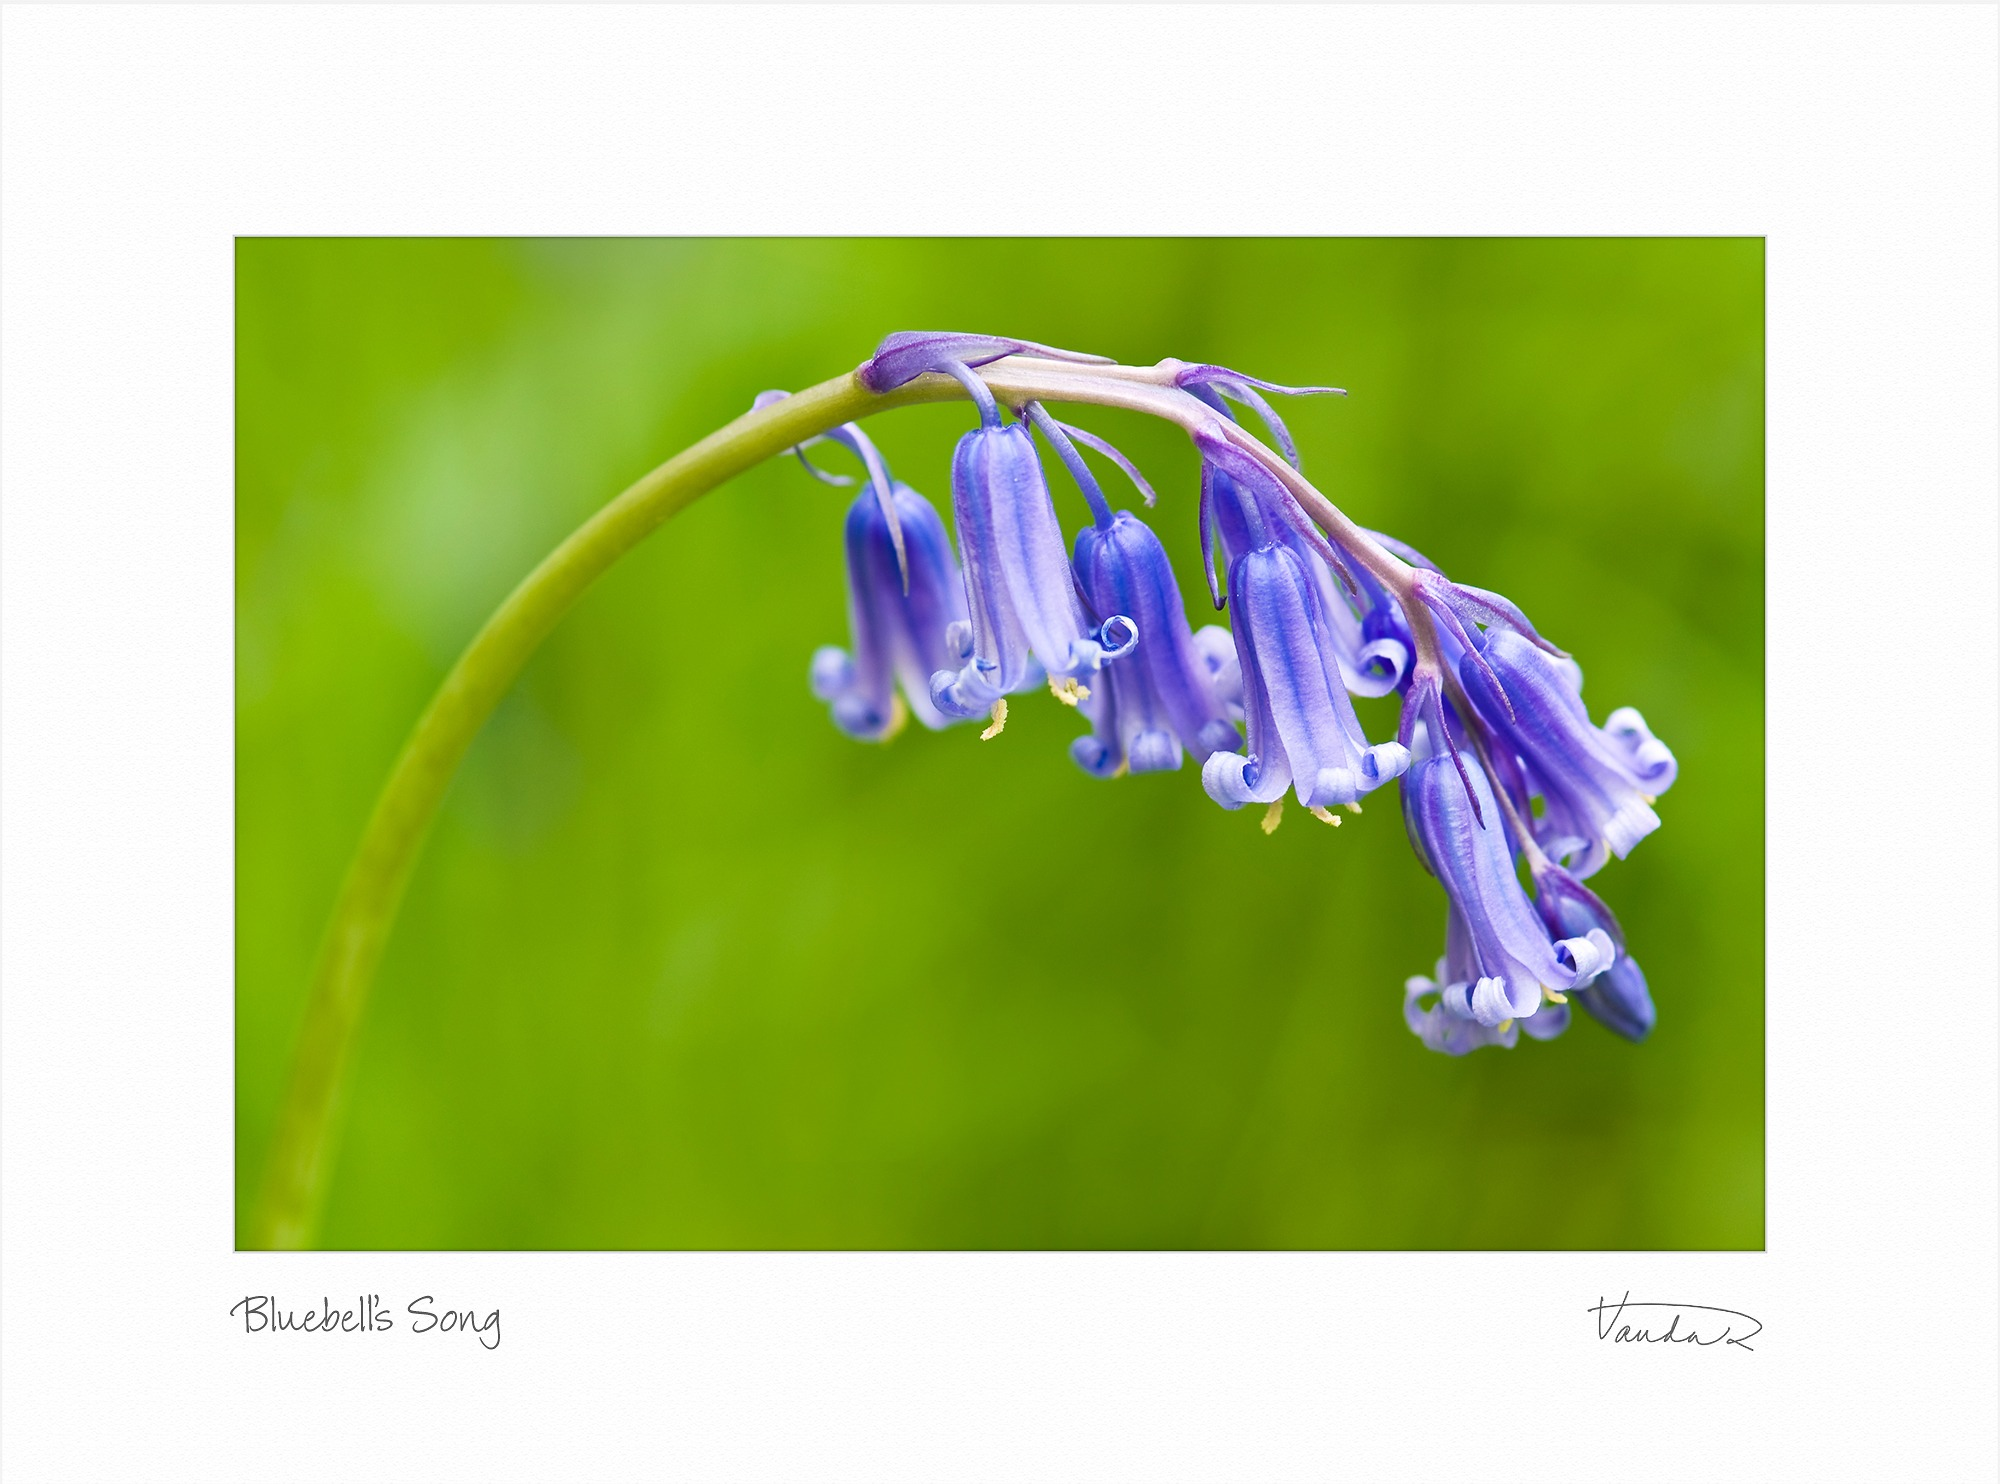 Bluebell's Song